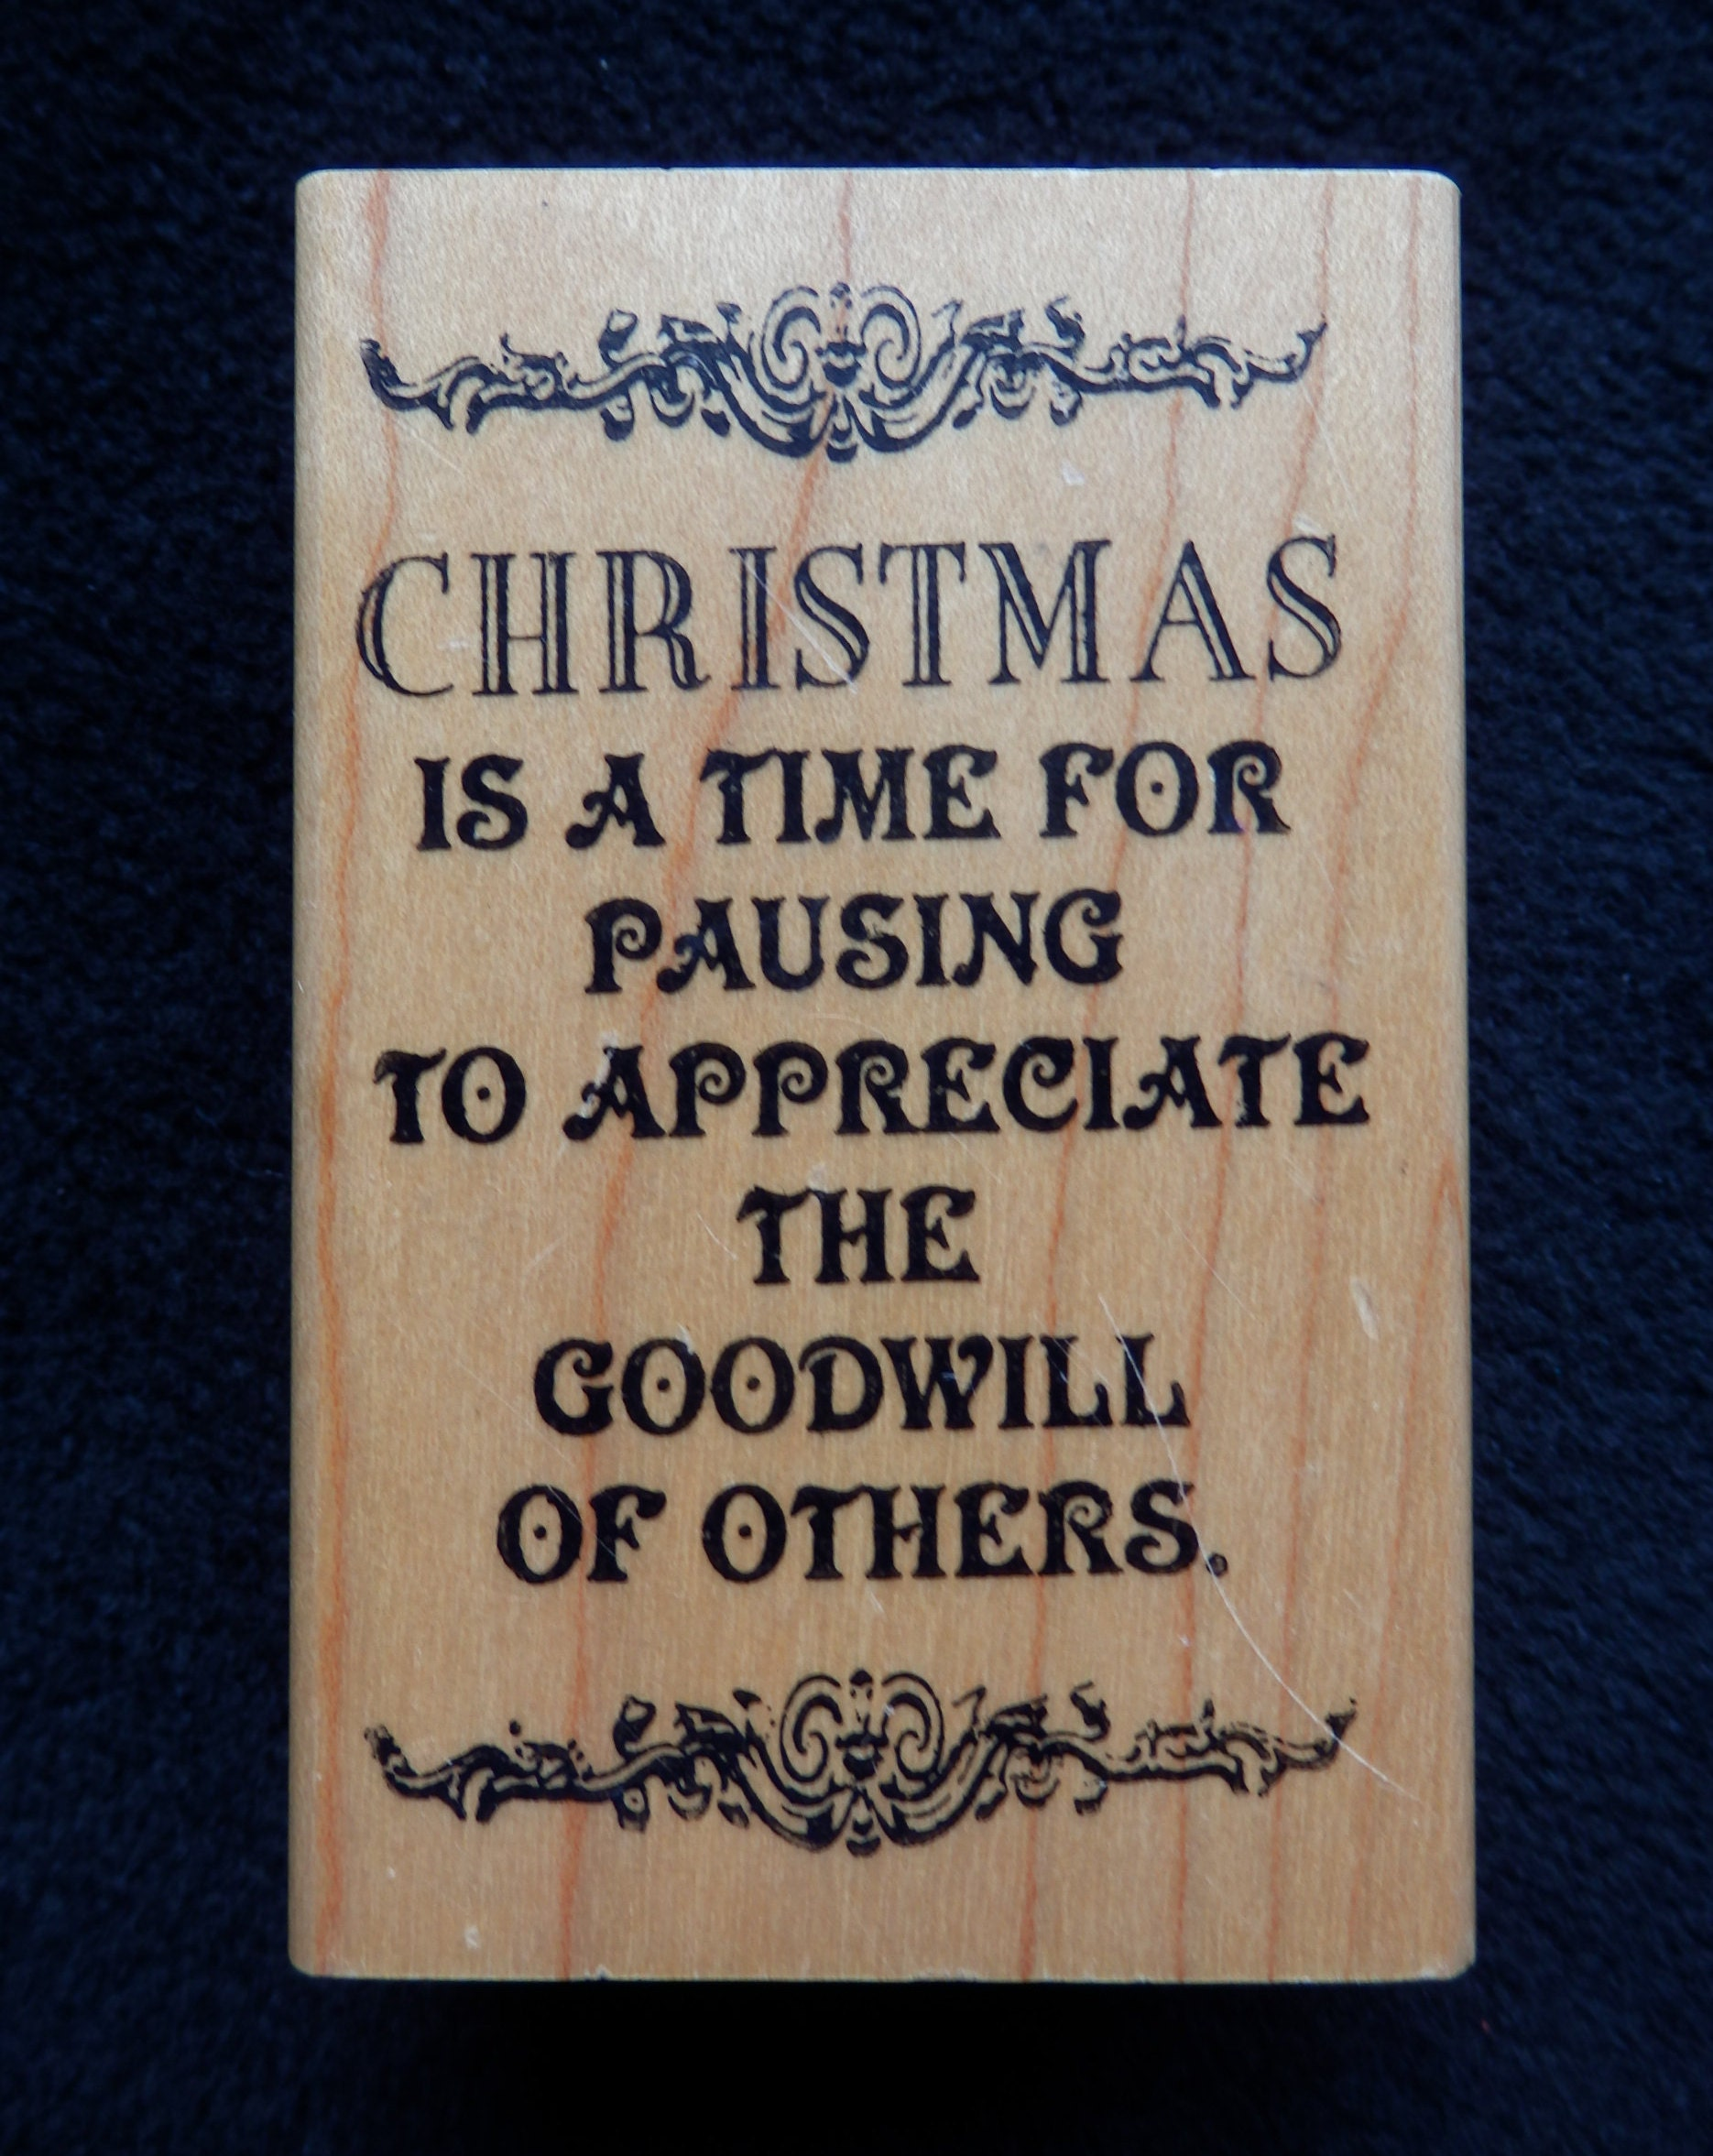 Christmas Goodwill Appreciation Wood mount rubber stamp | Etsy